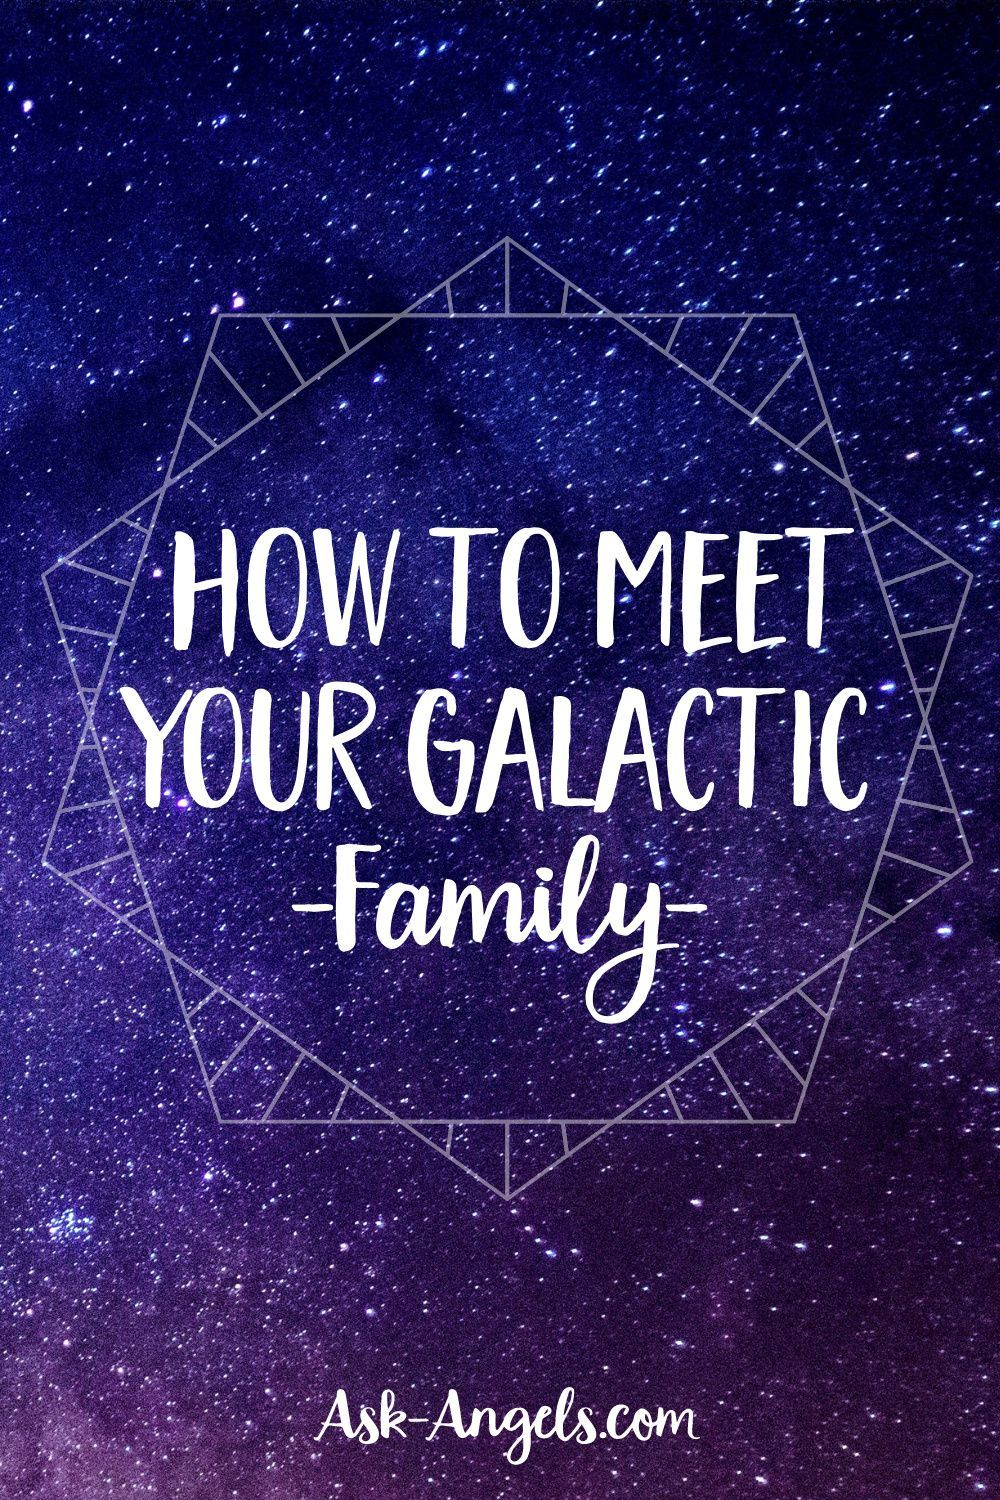 How to Meet Your Galactic Family